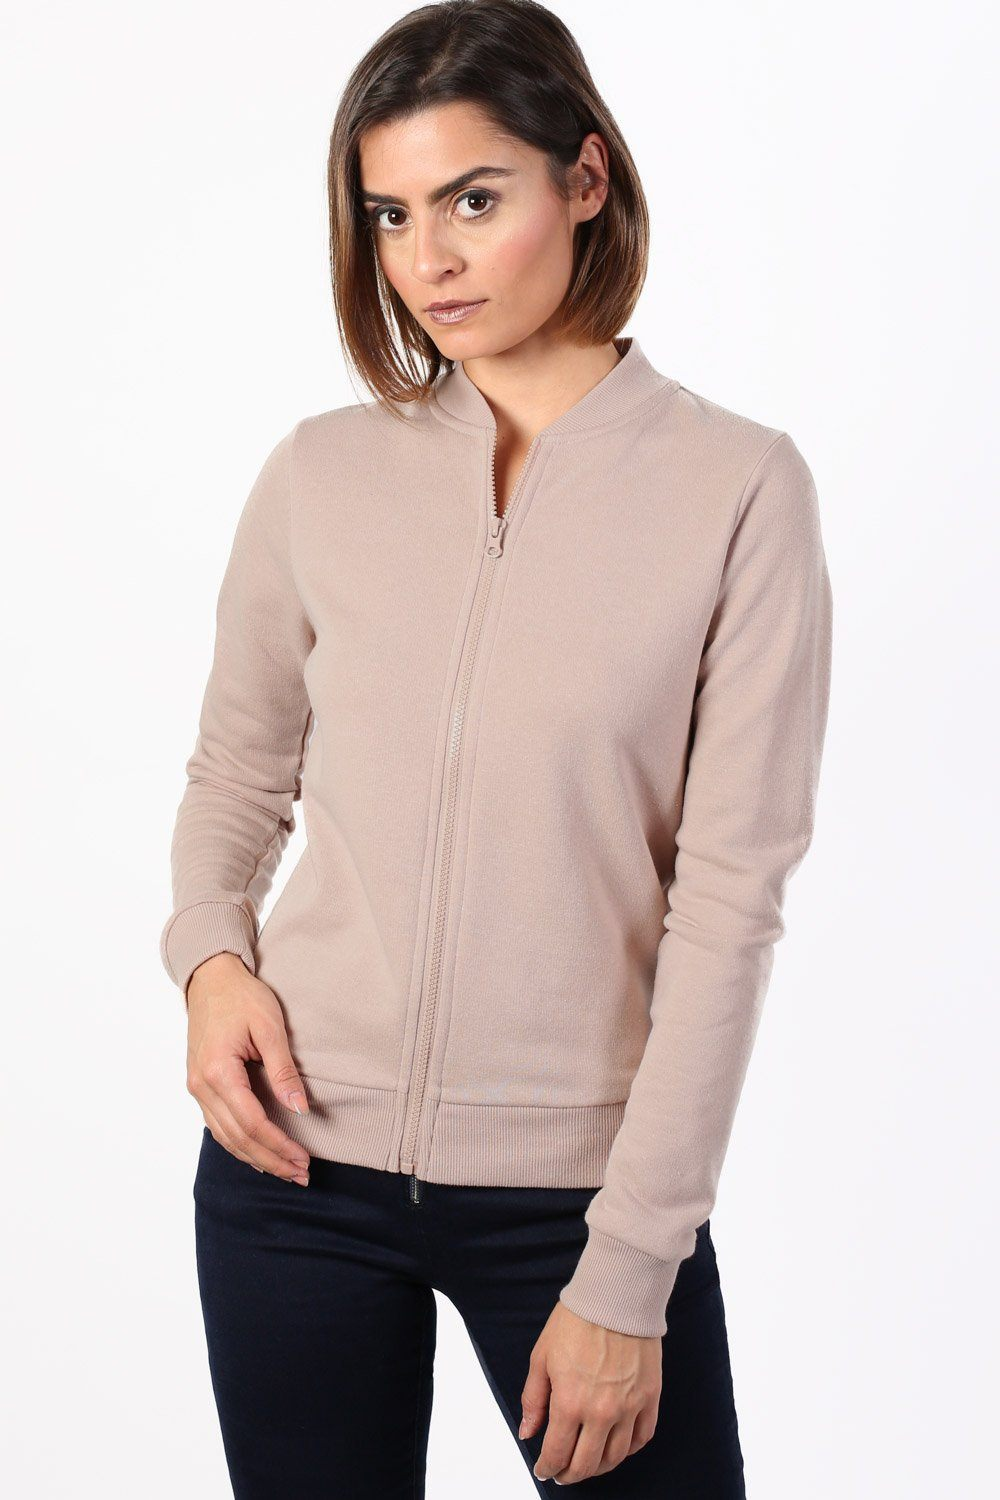 Plain Zip Front Long Sleeve Jogger Top in Dusty Pink 0